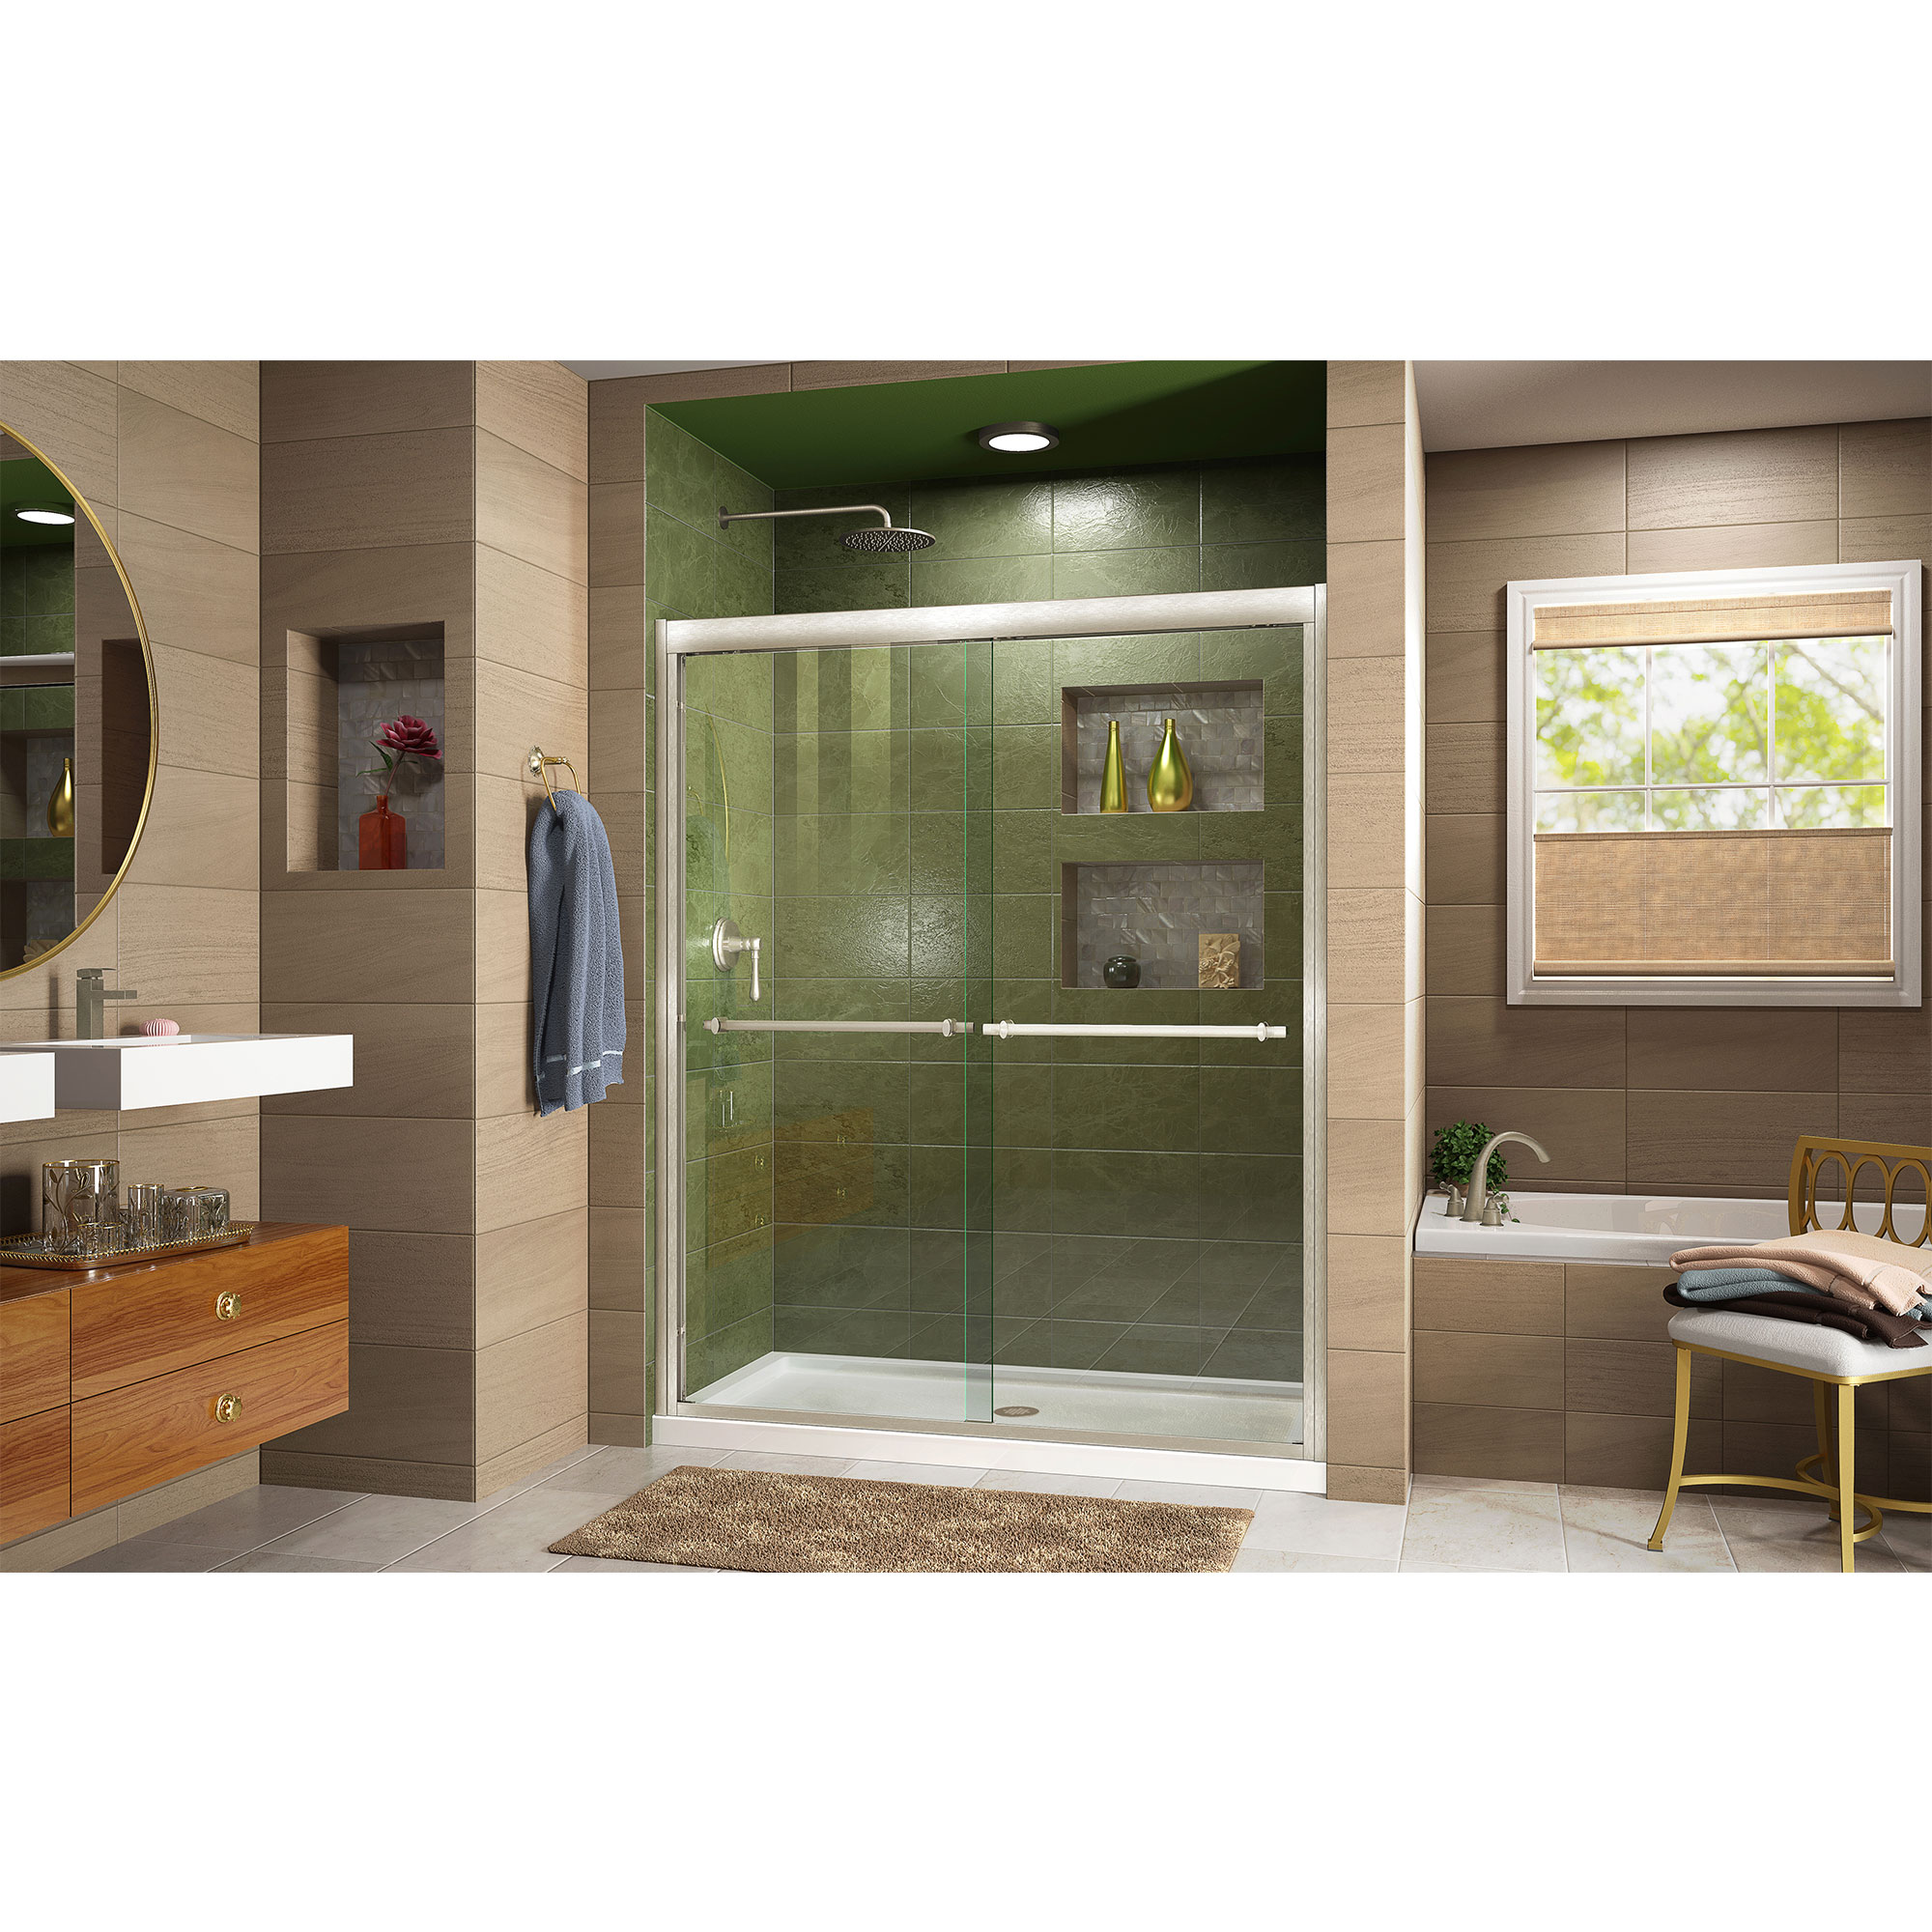 Dreamline Shdr 1248728 04 Duet 44 48 Sliding Shower Door Nickel